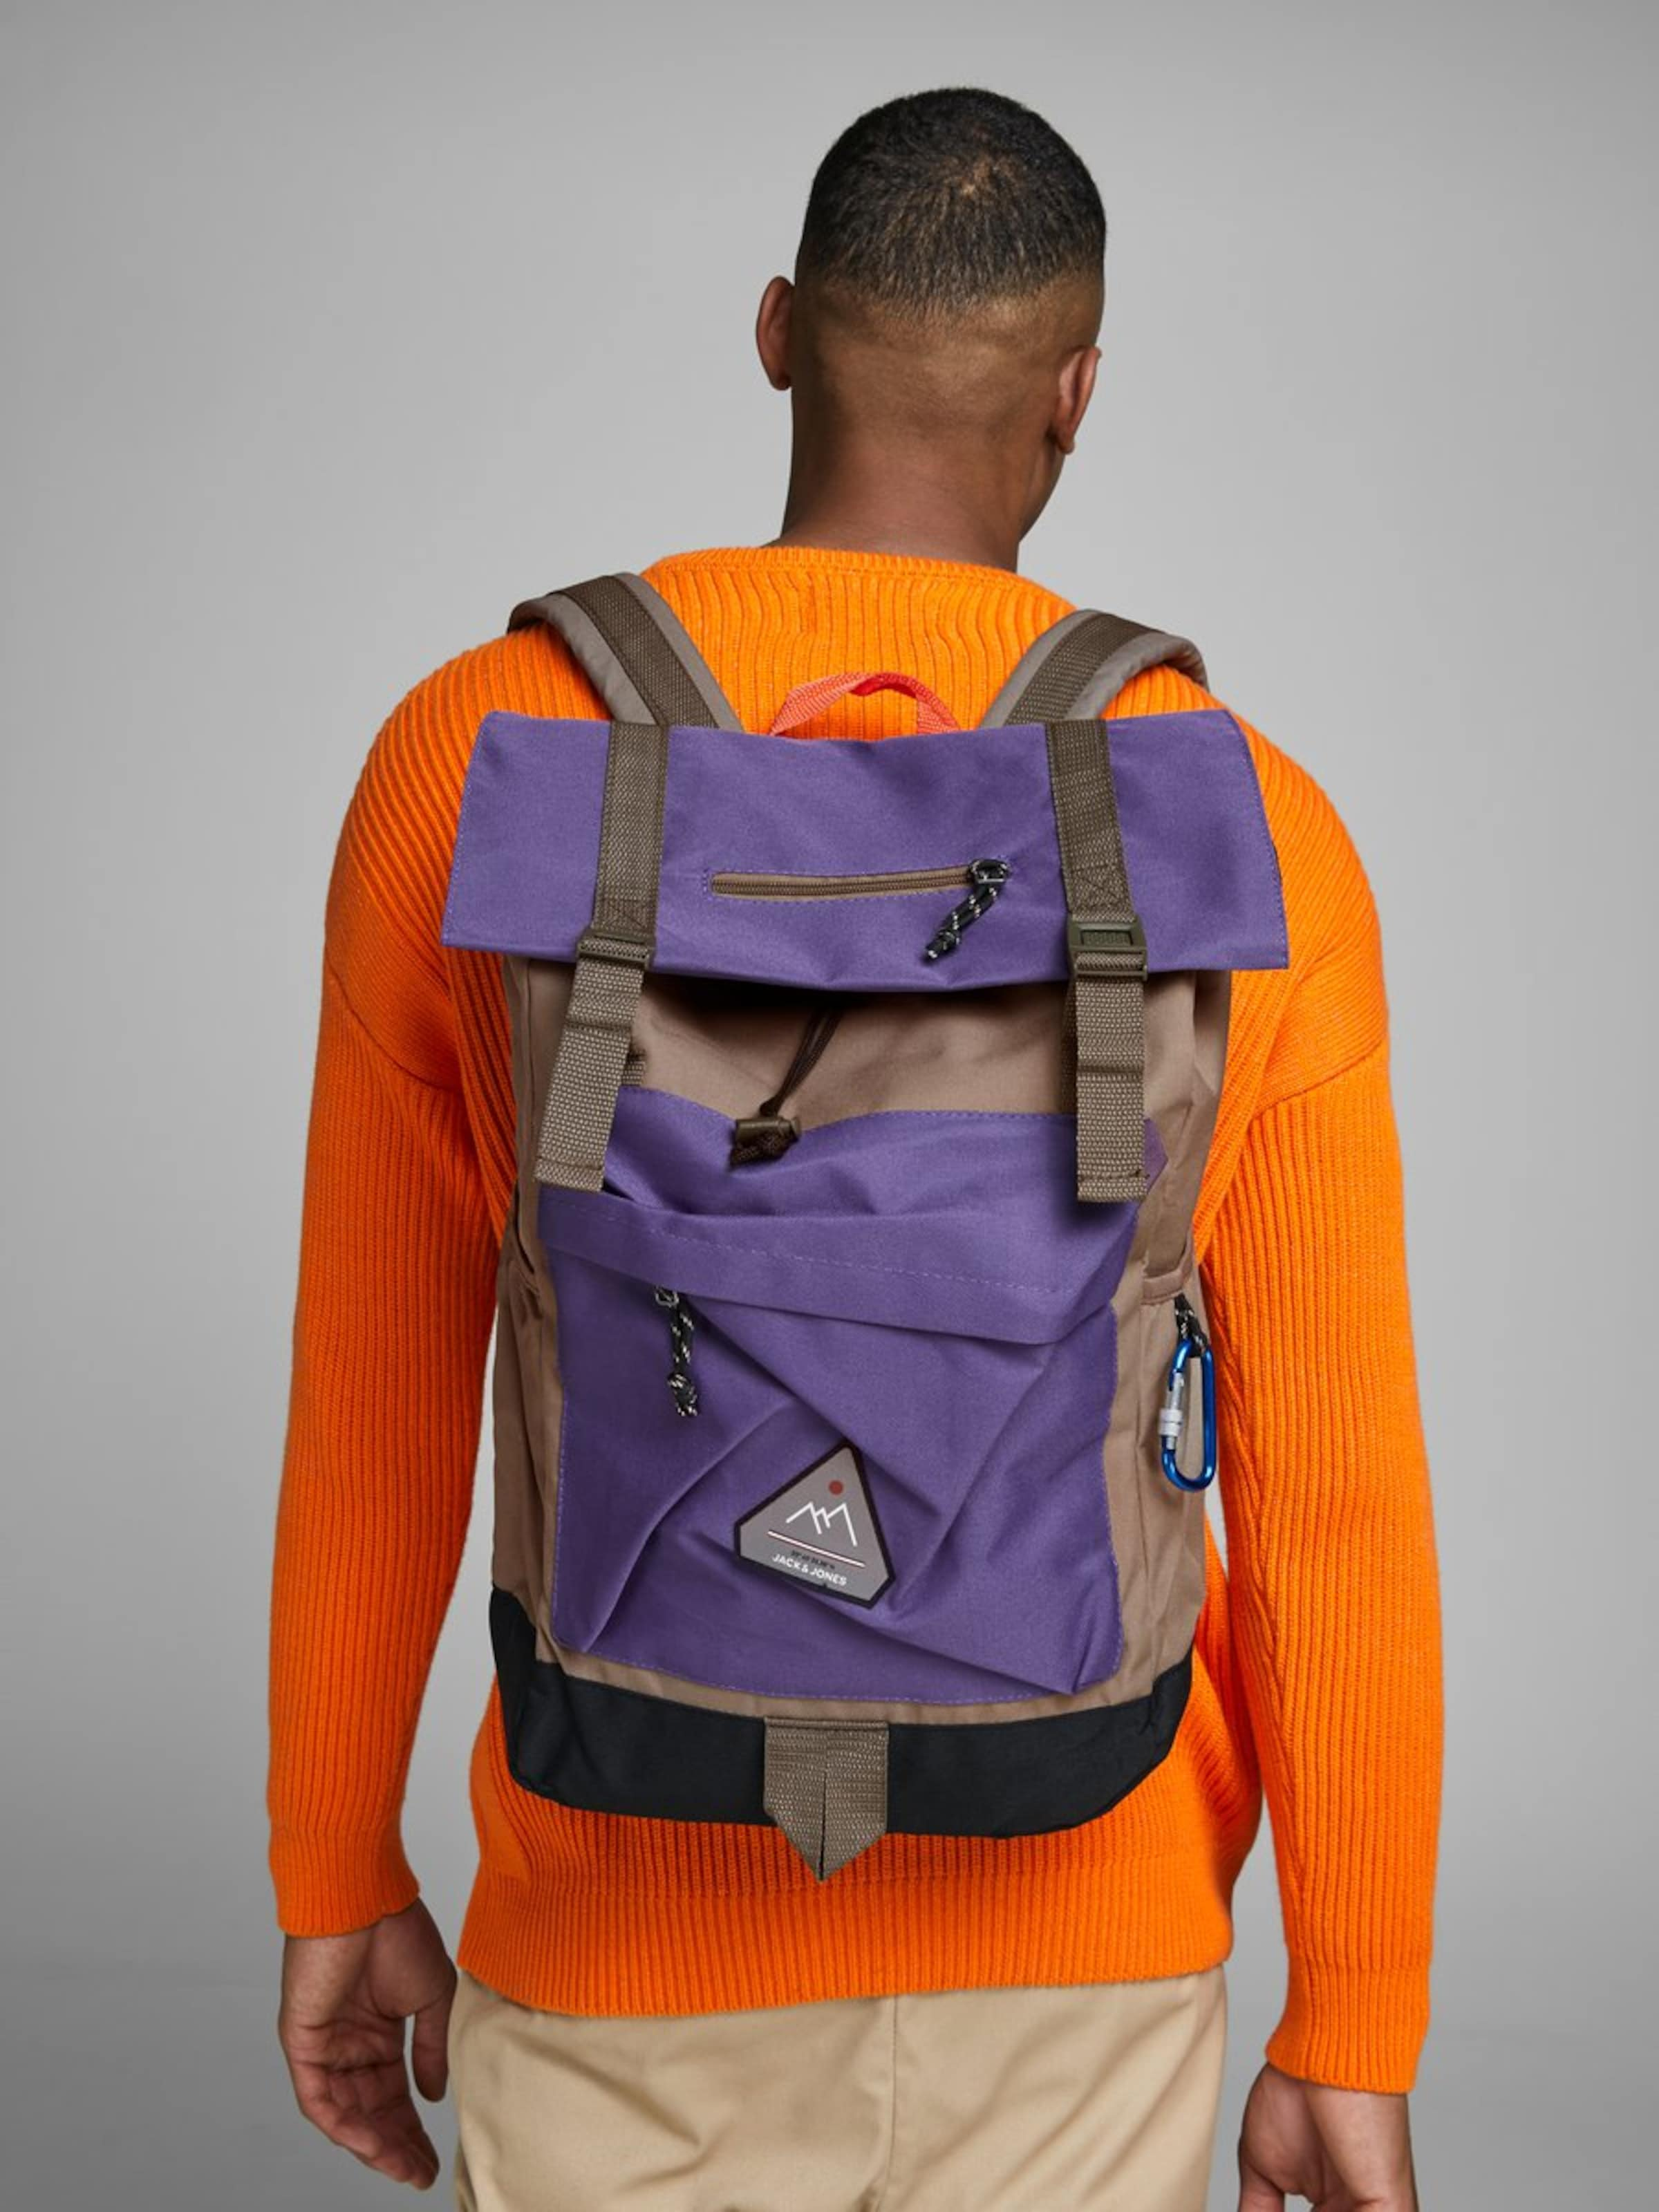 Jackamp; In Rucksack In Jones Rucksack Jackamp; Jones CamelNeonlila jUpMqLzSVG